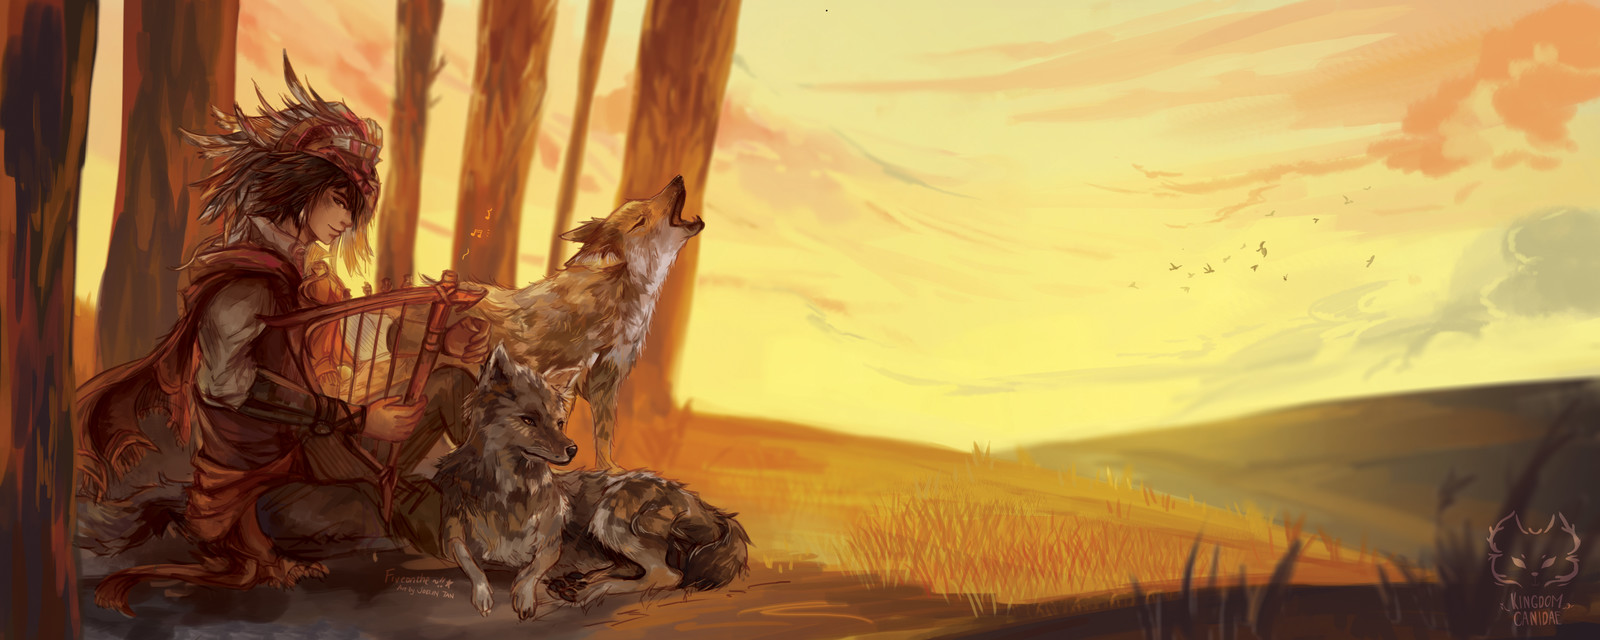 Kingdom Canidae: Coyote.